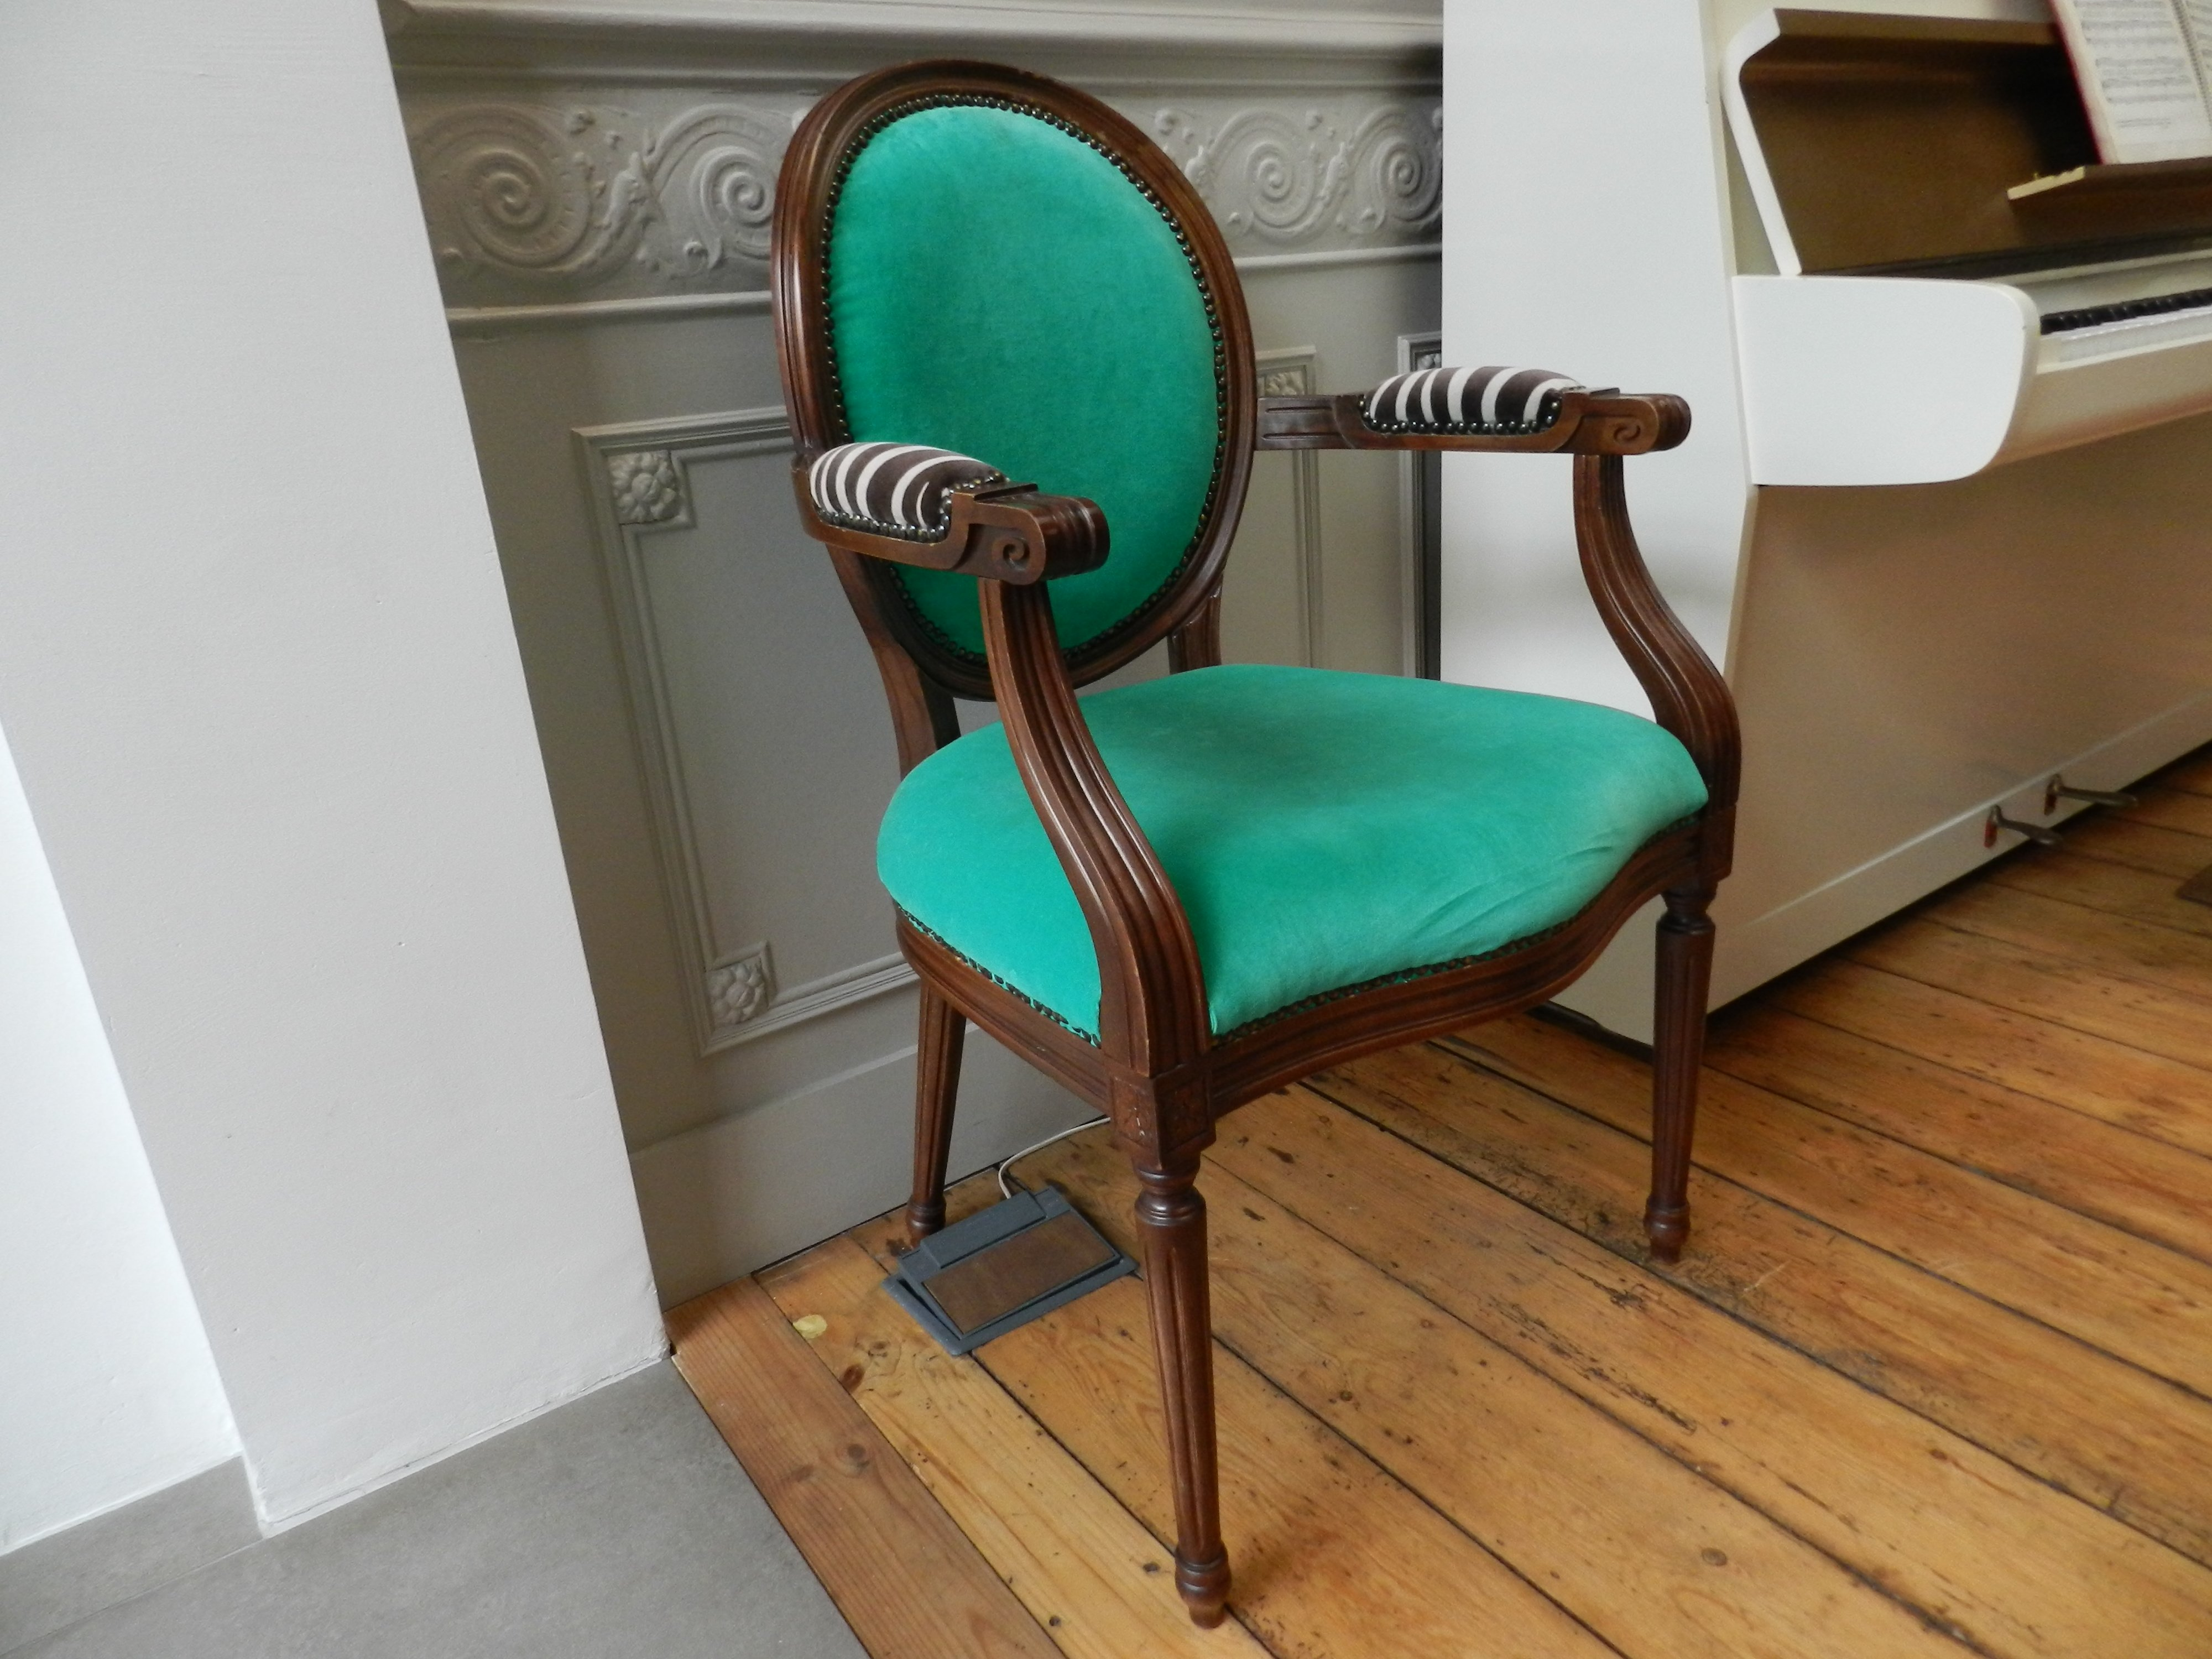 Chair found on the street refurbished